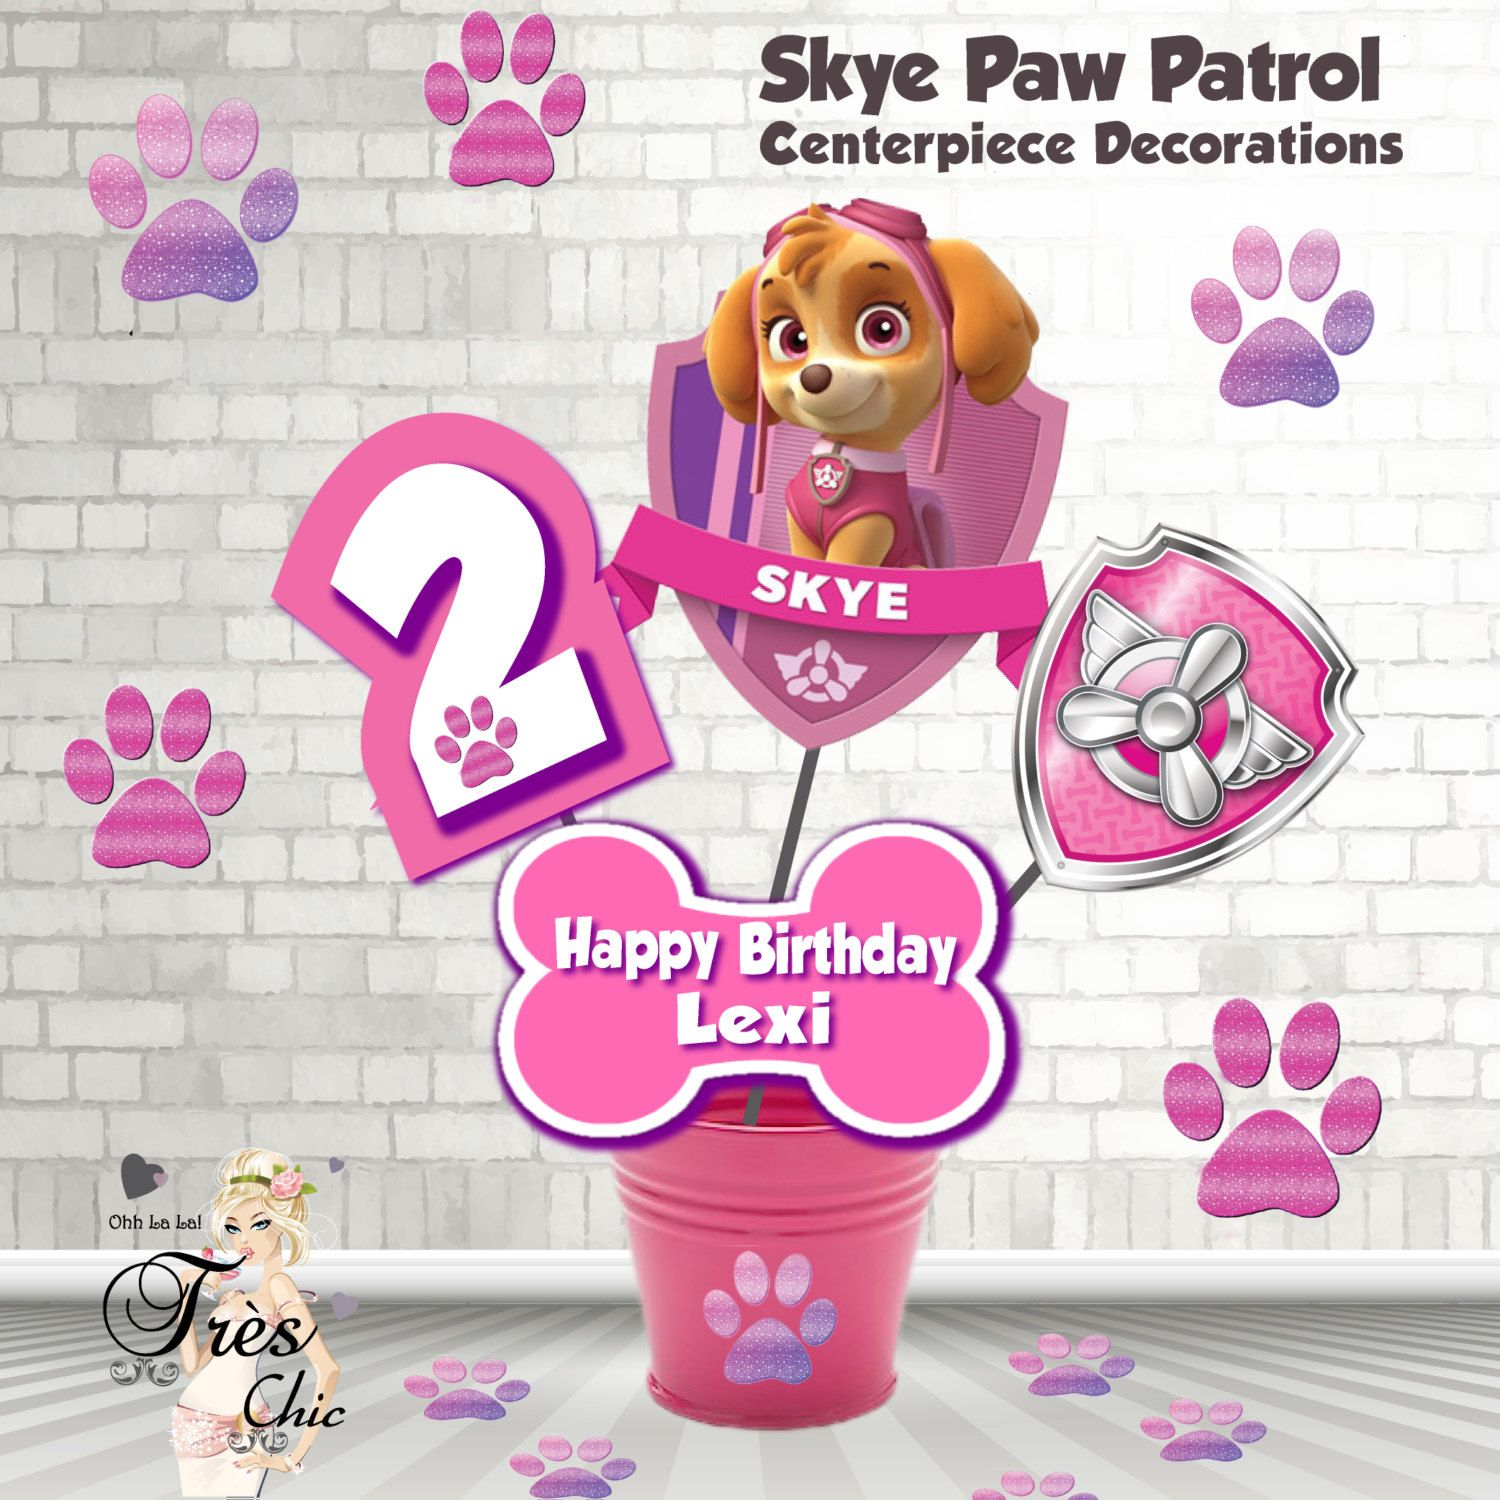 Skye Paw Patrol Birthday DecorationsSkye Large CenterpieceSkye InvitationPaw InvitationSkye Party SuppliesSkye By